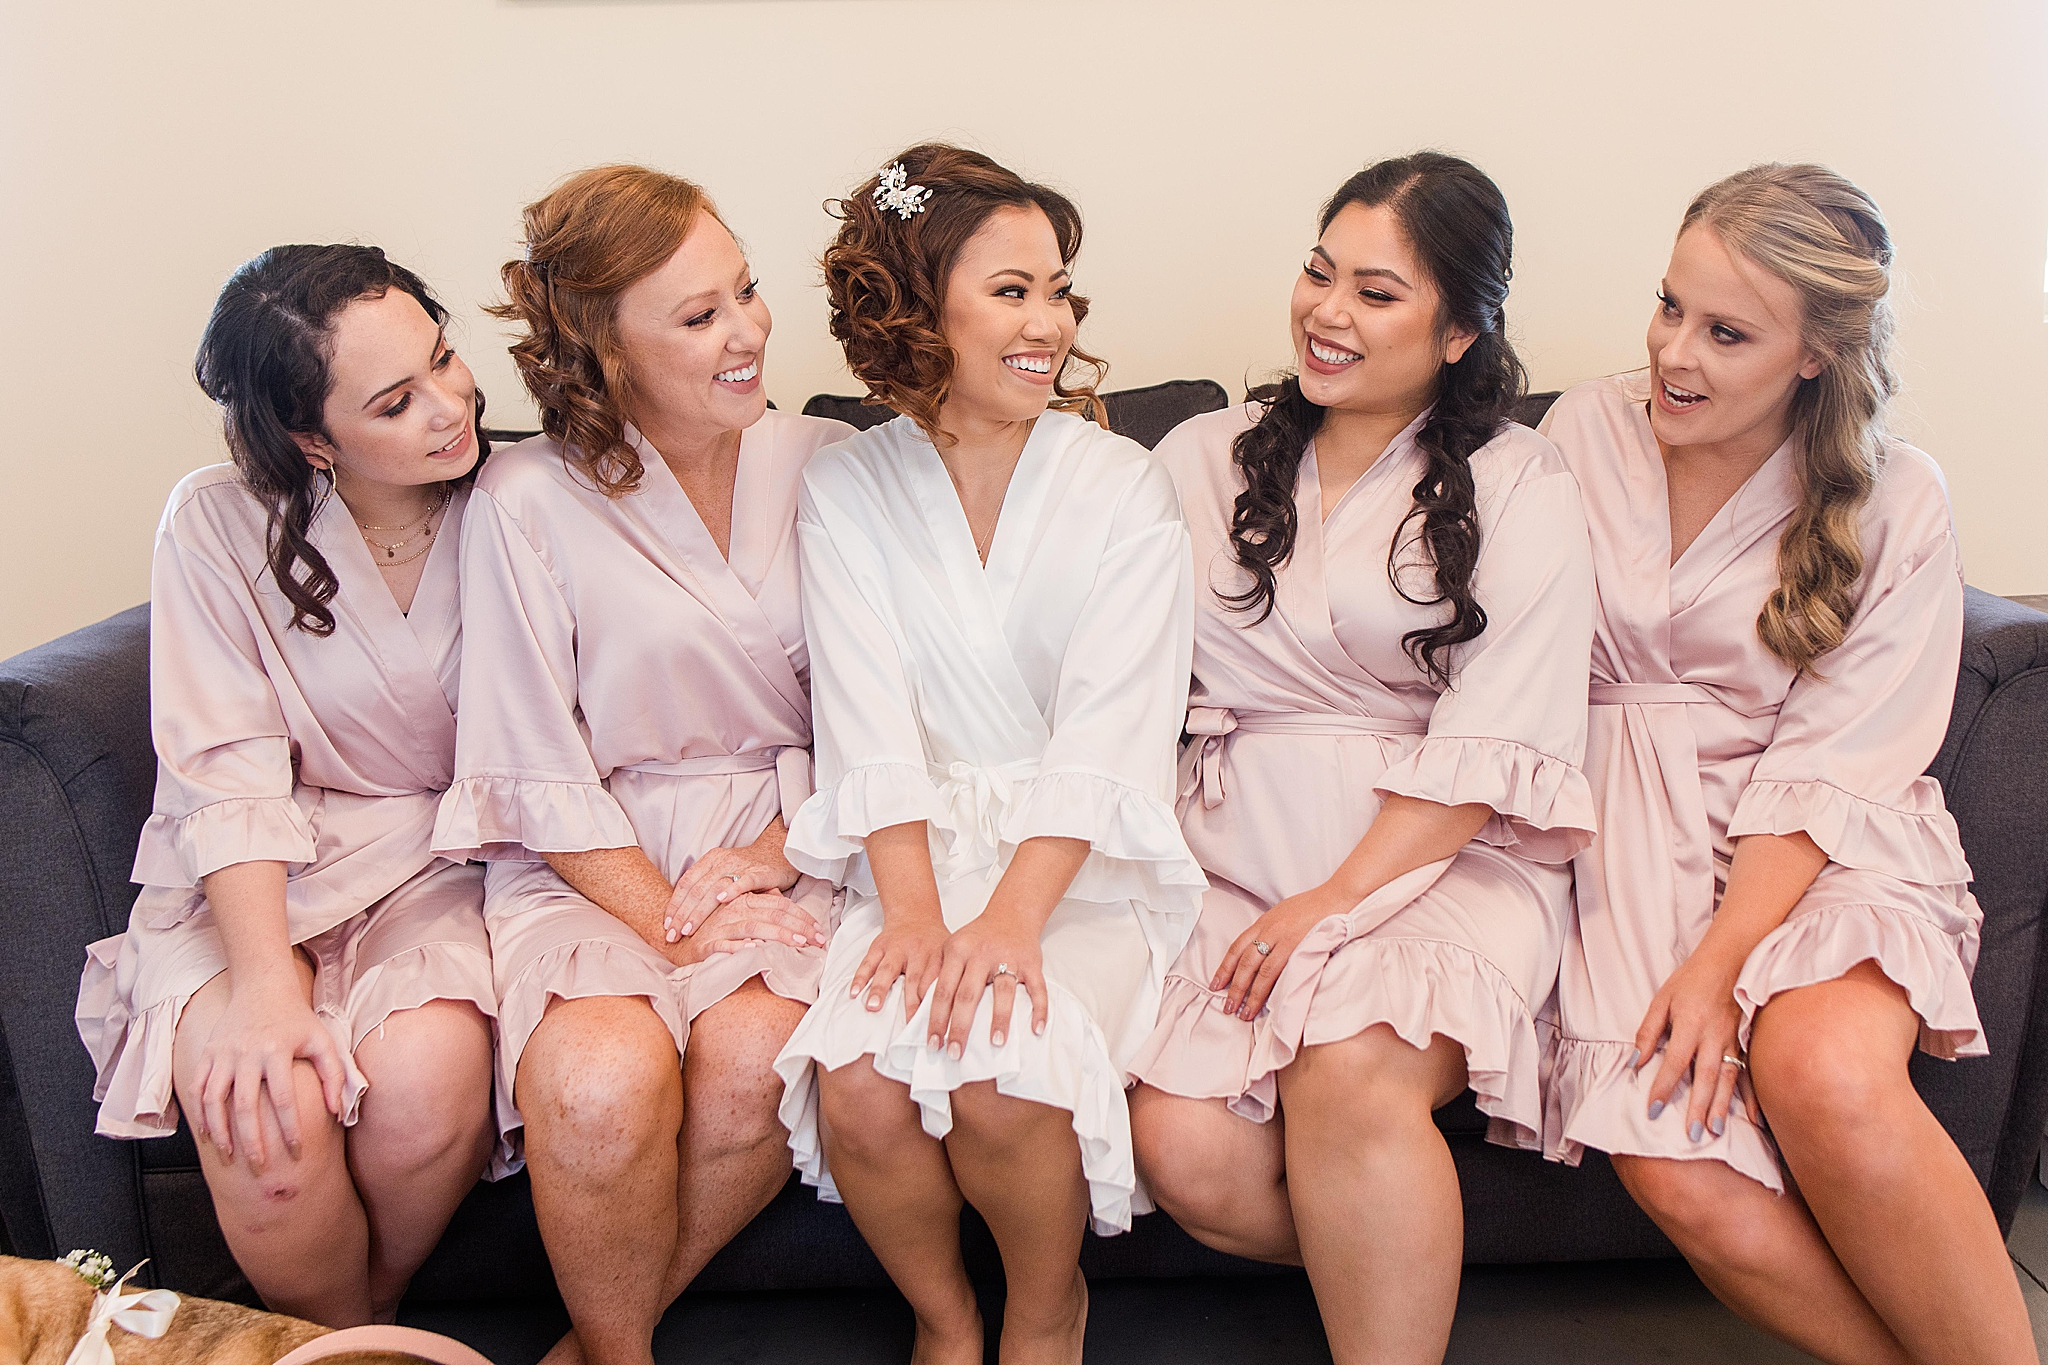 bride poses with bridesmaids in pink robes